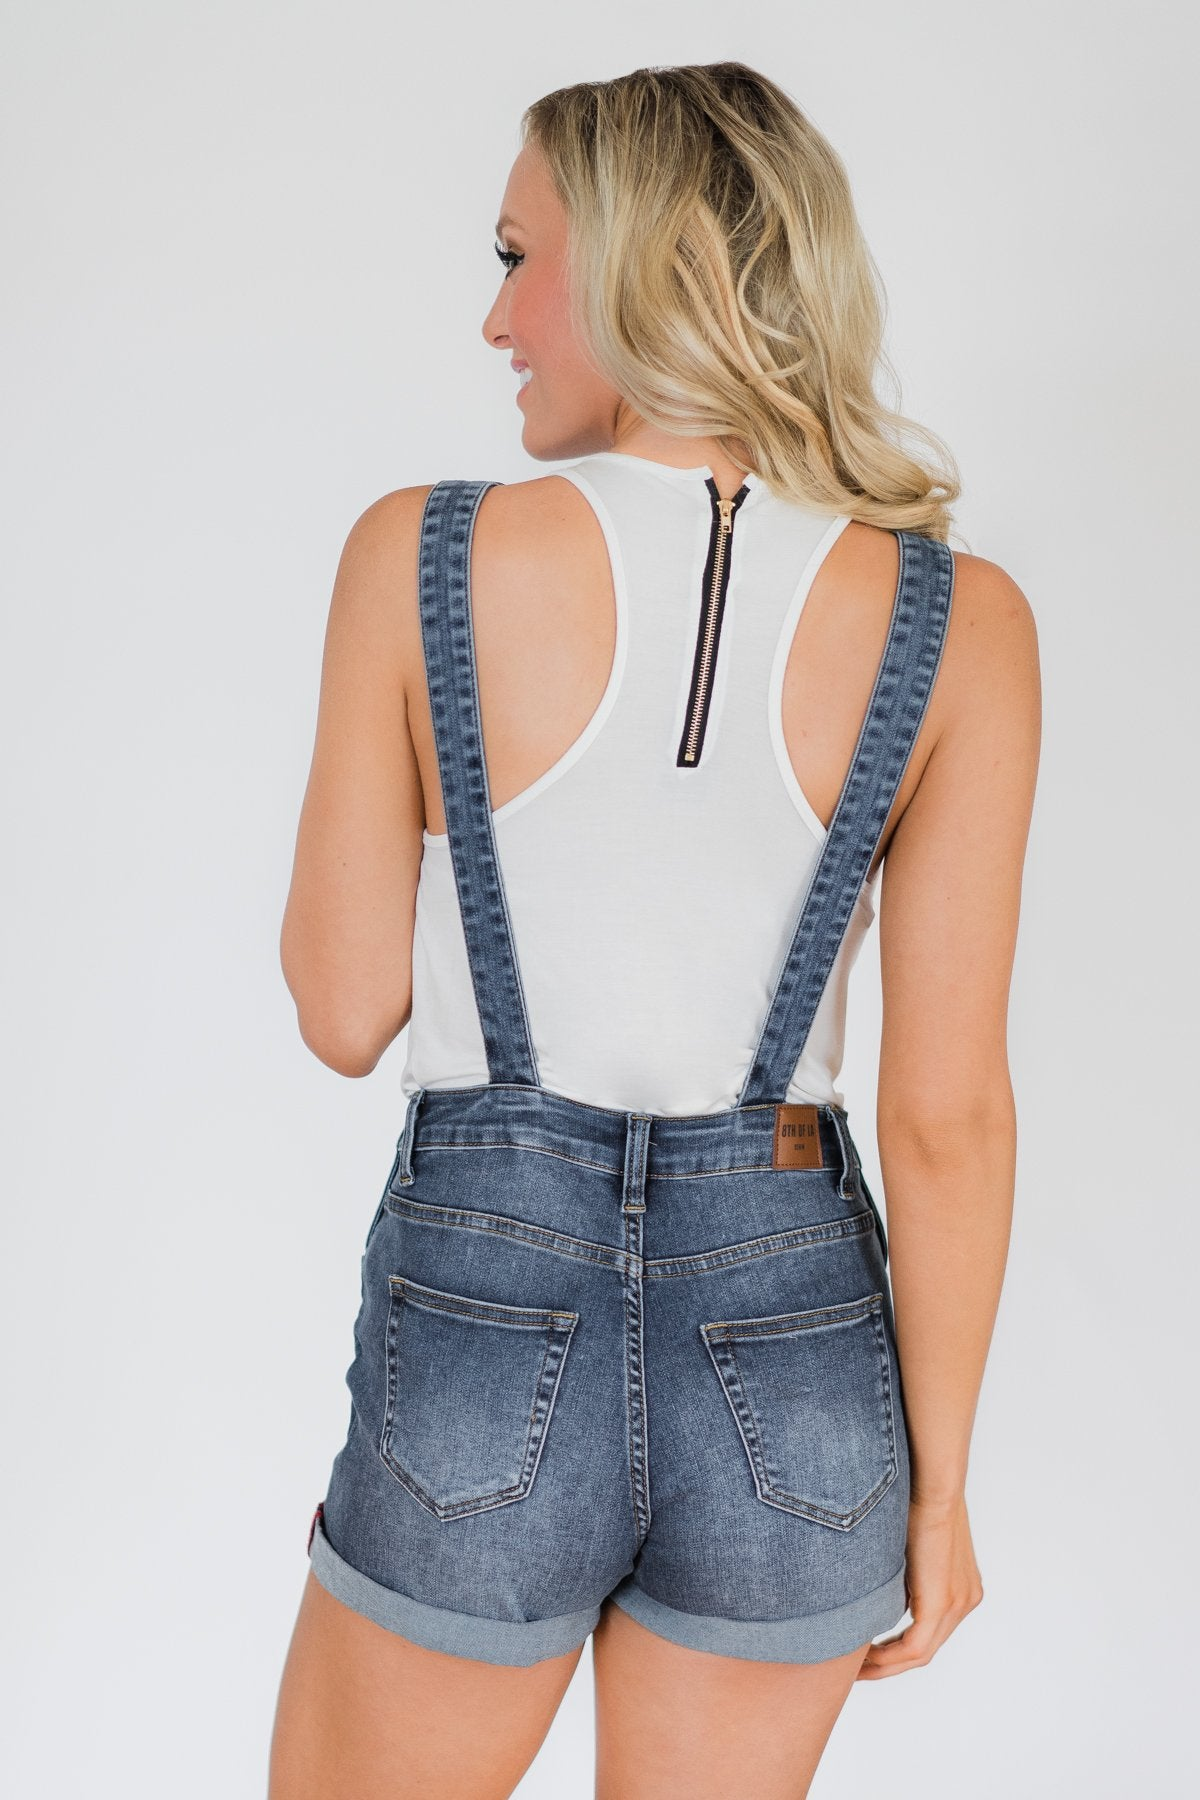 8th of LA Short Overalls- Ally Wash